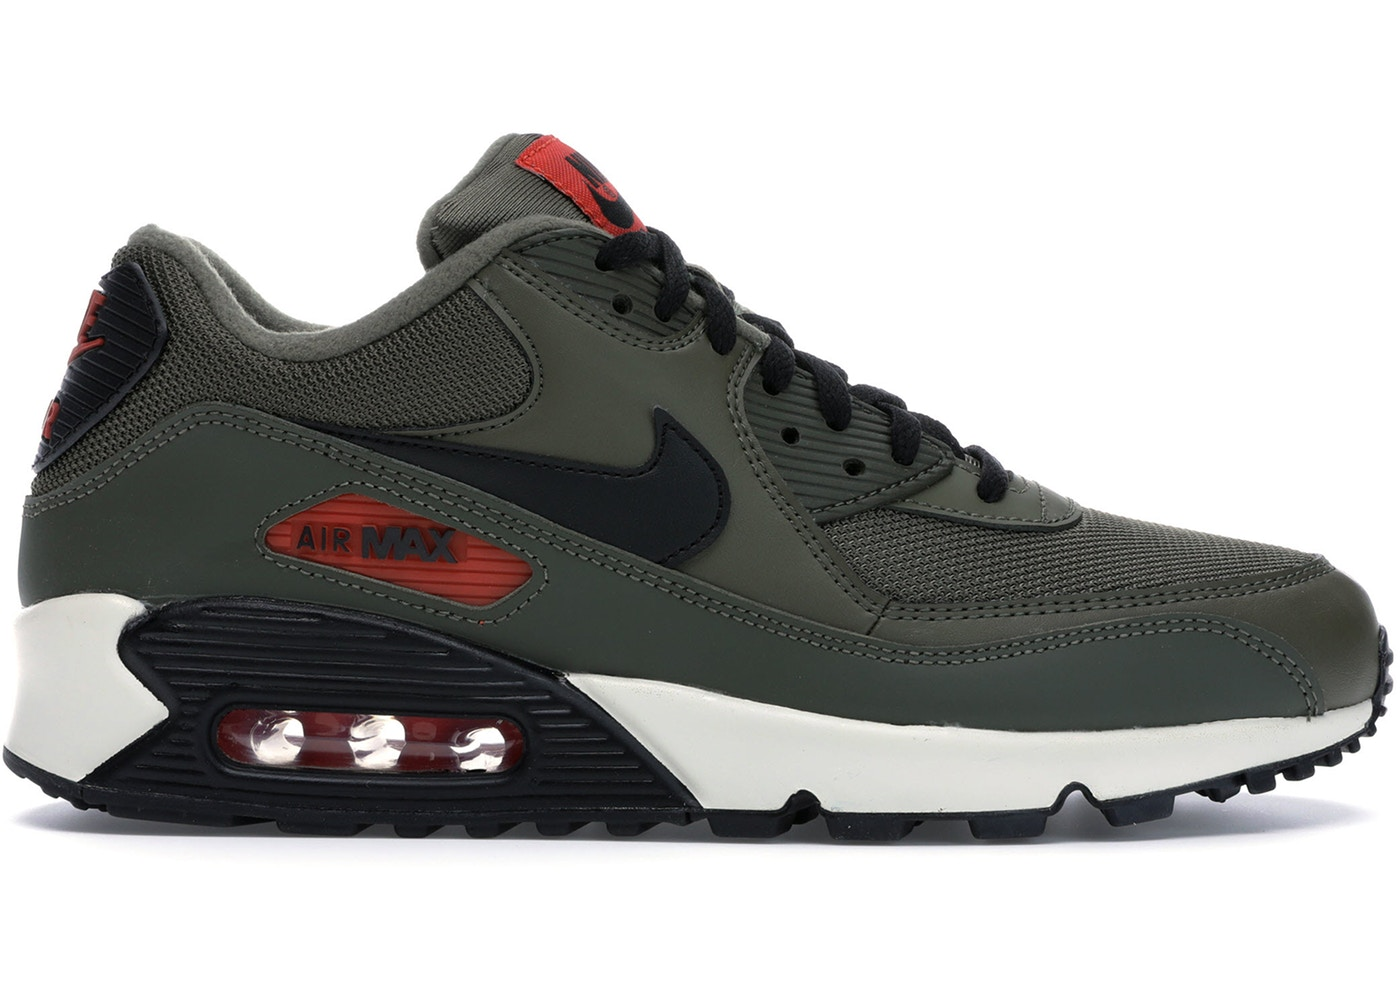 ナイキ メンズ Nike Air Max 90 スニーカー MEDIUM OLIVE/BLACK-TEAM ORANGE-CARGO KHAKI-BLACK-SAIL エアマックス90